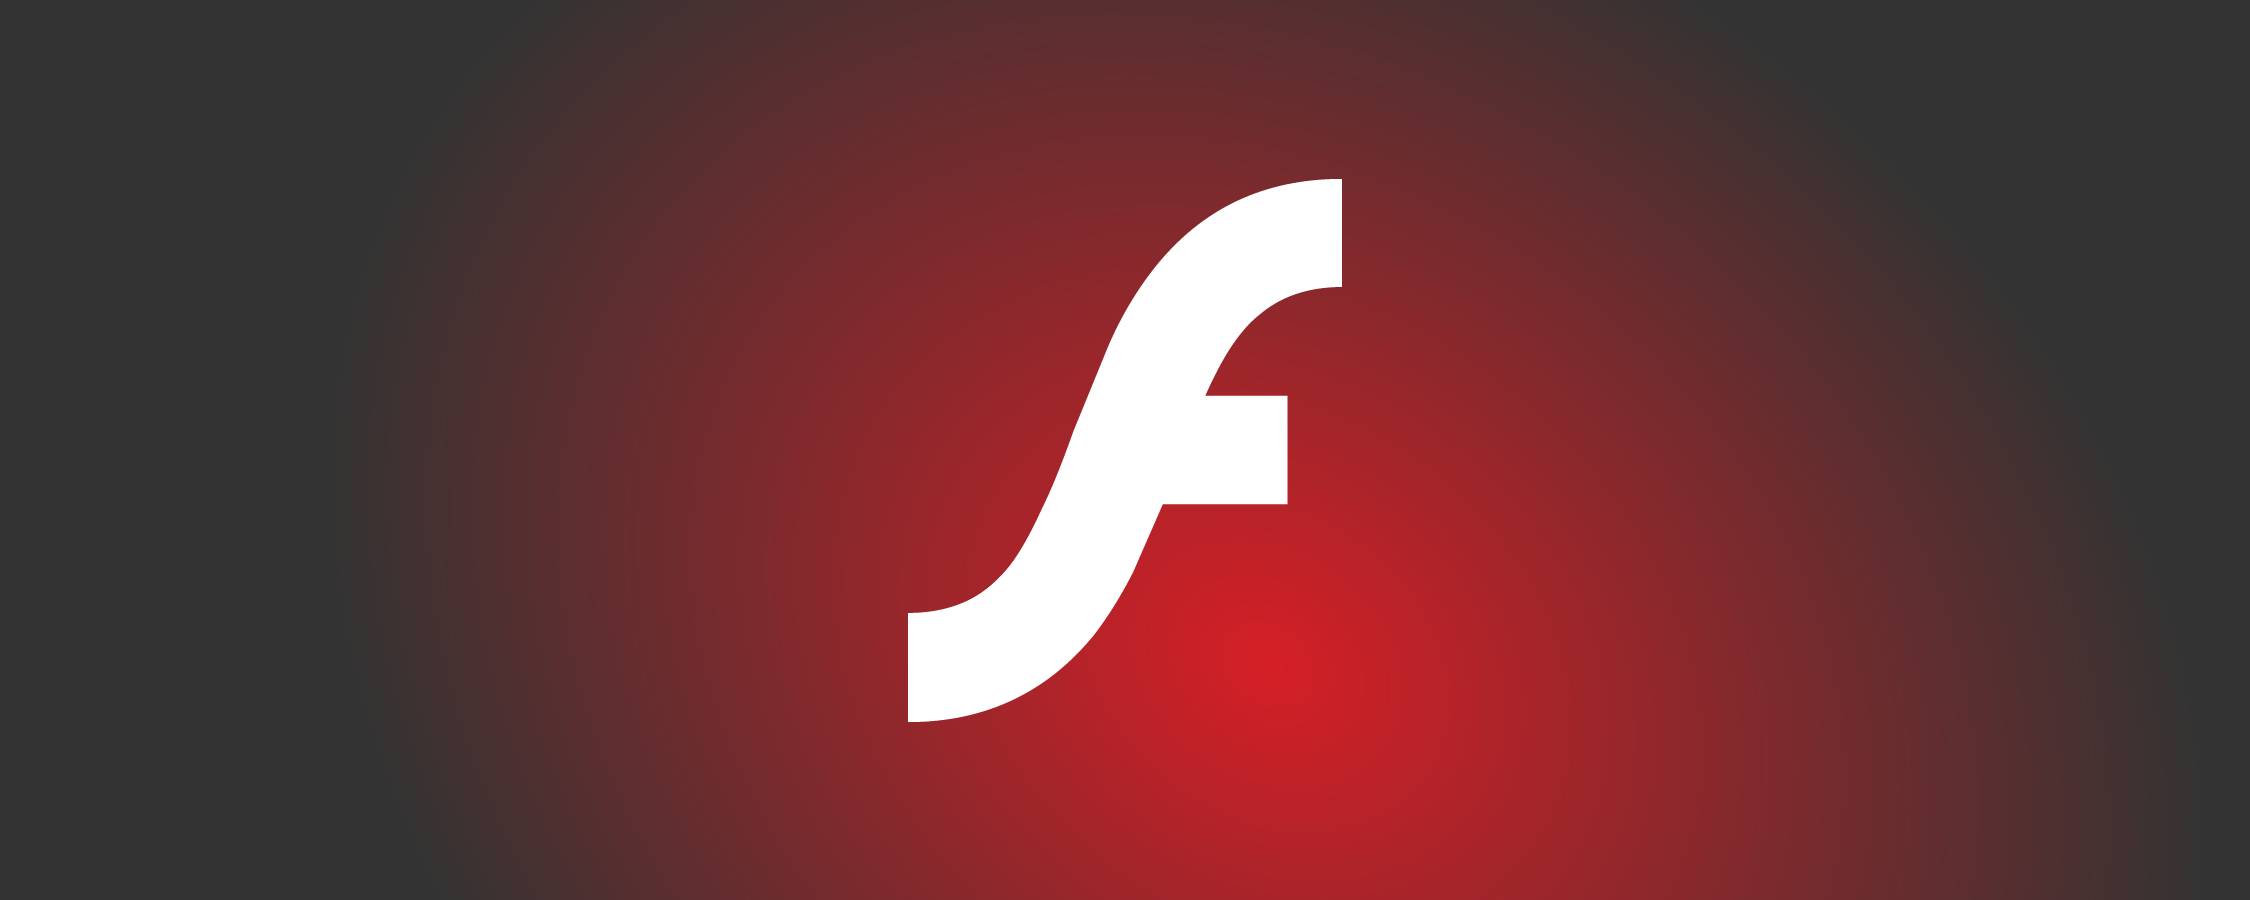 adobe flash player 10.3 free download for windows 8.1